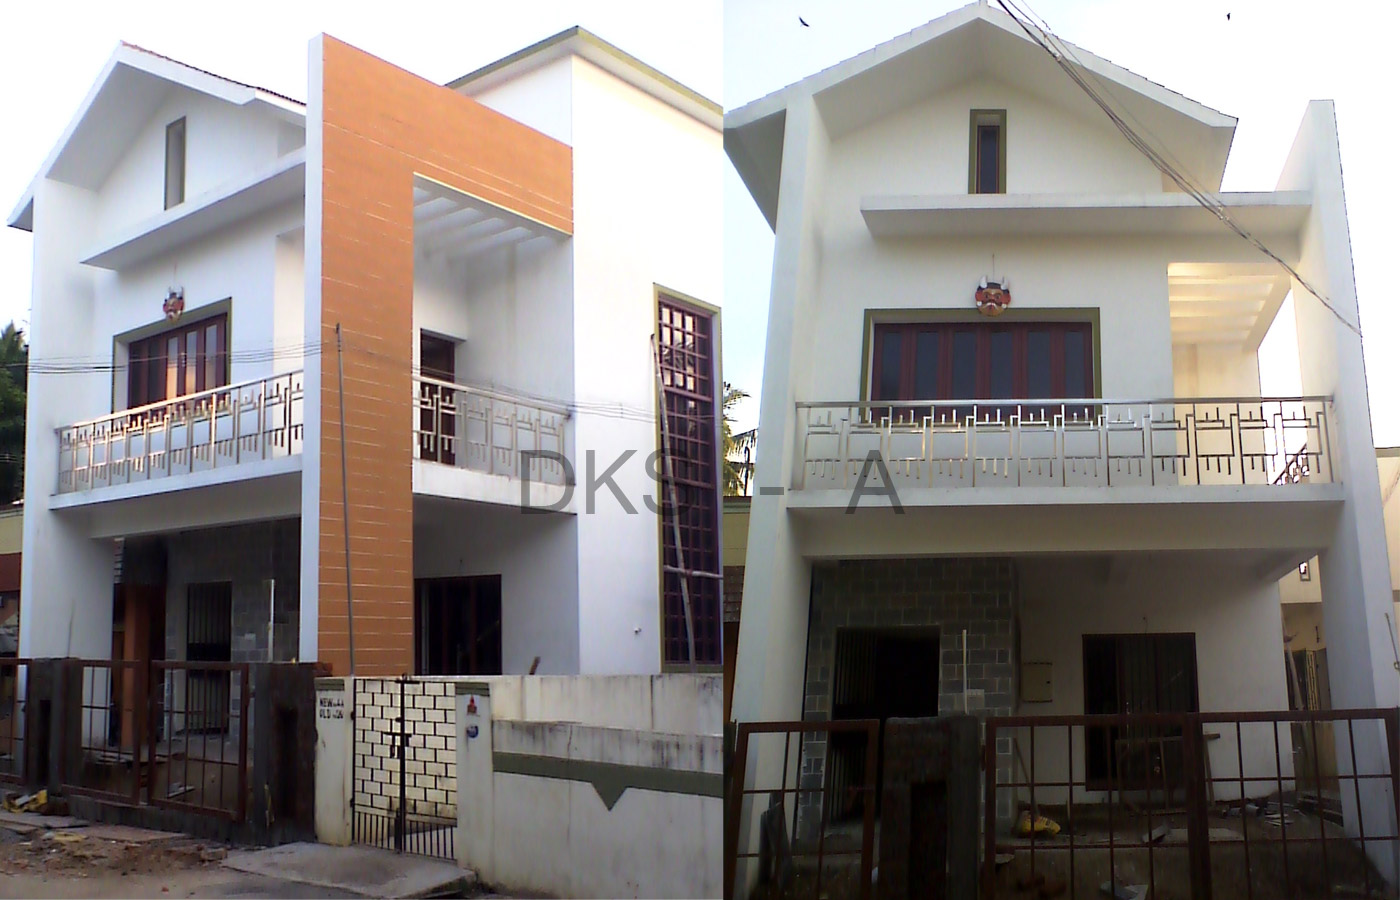 House Designs Chennai | Joy Studio Design Gallery - Best Design